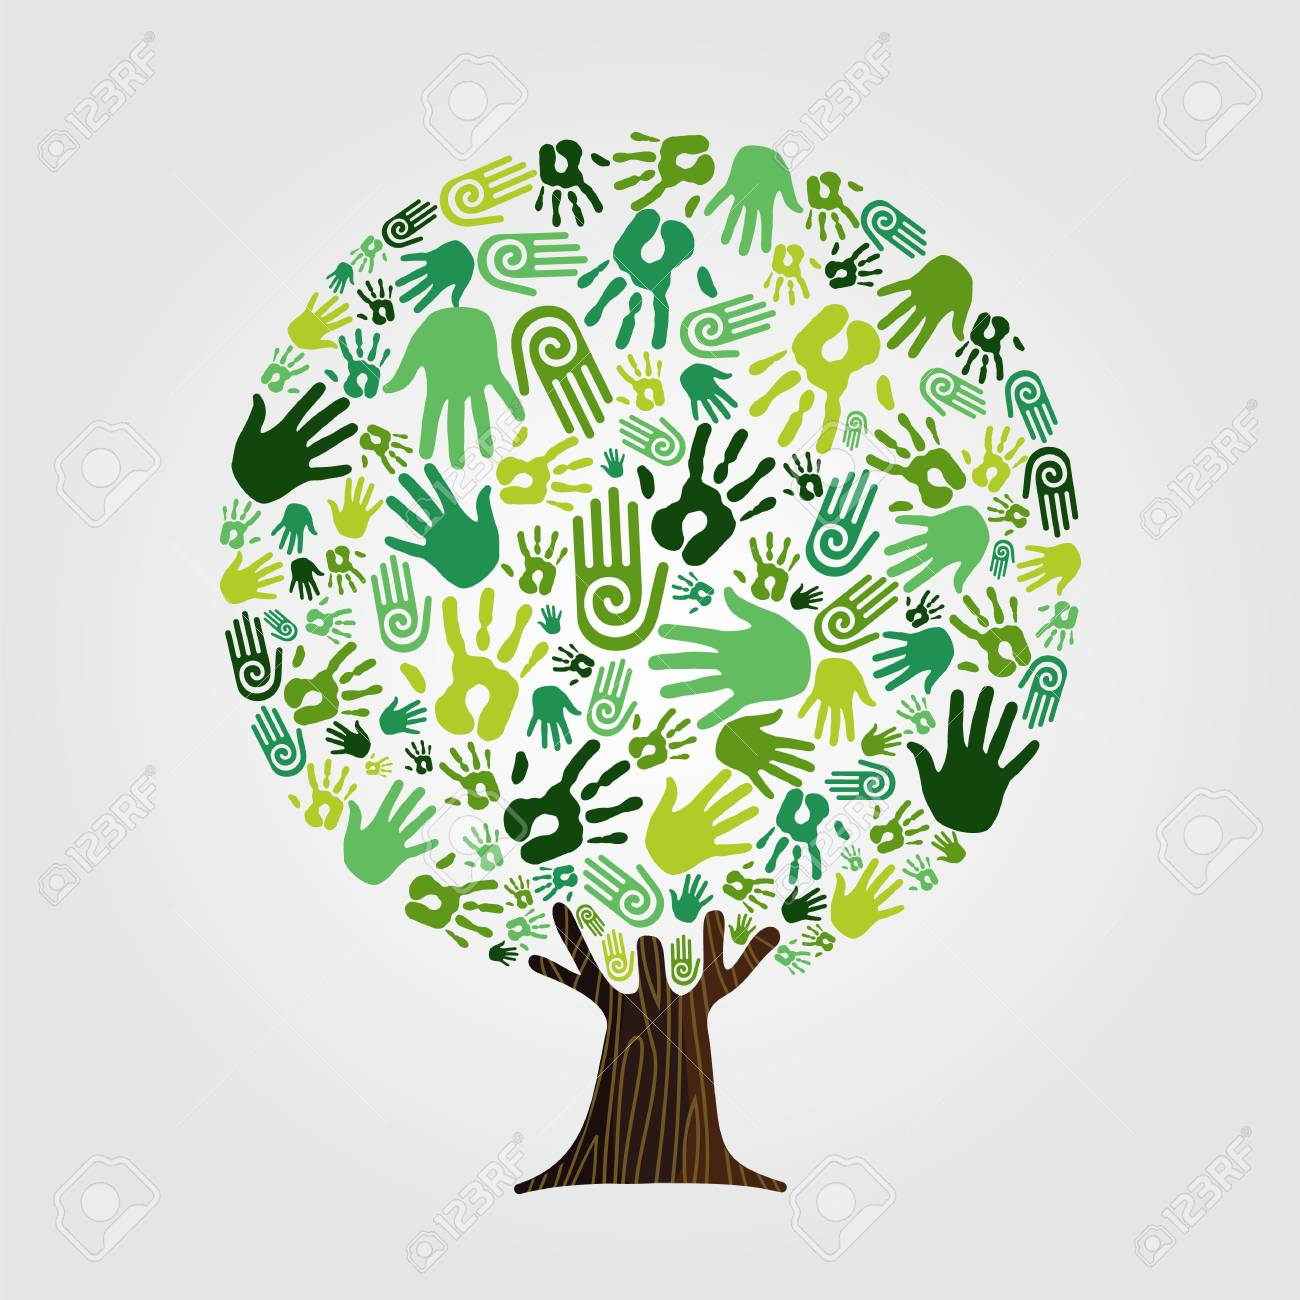 Tree made of green human hands with branches and roots. Nature help concept, Environment group or earth care teamwork. vector. - 103830838